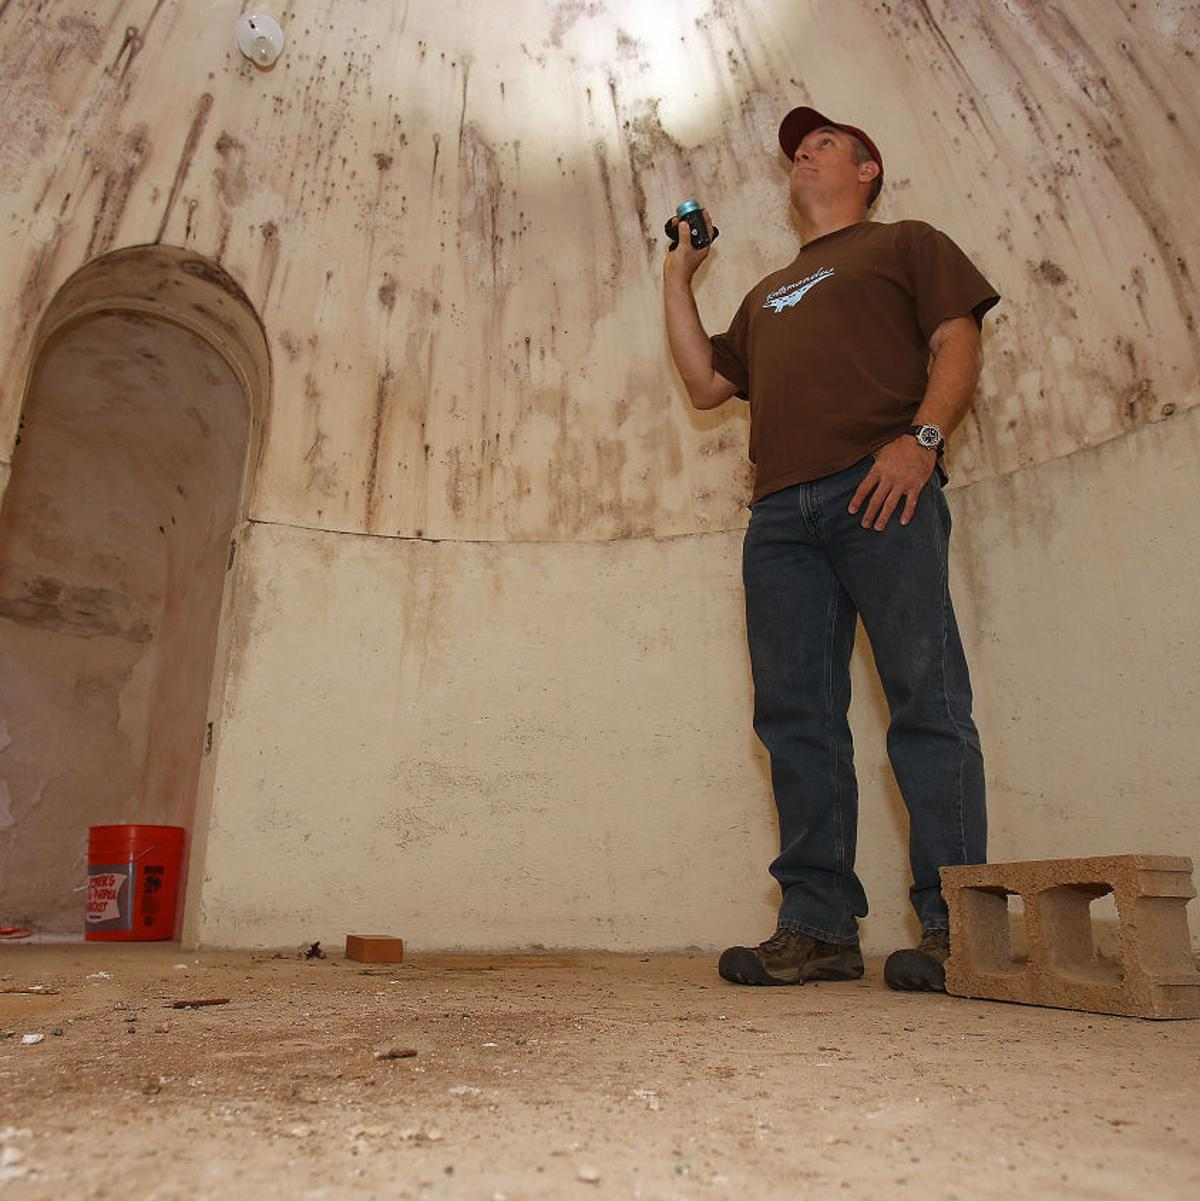 A real digger-upper: Tucson man finds bomb shelter in